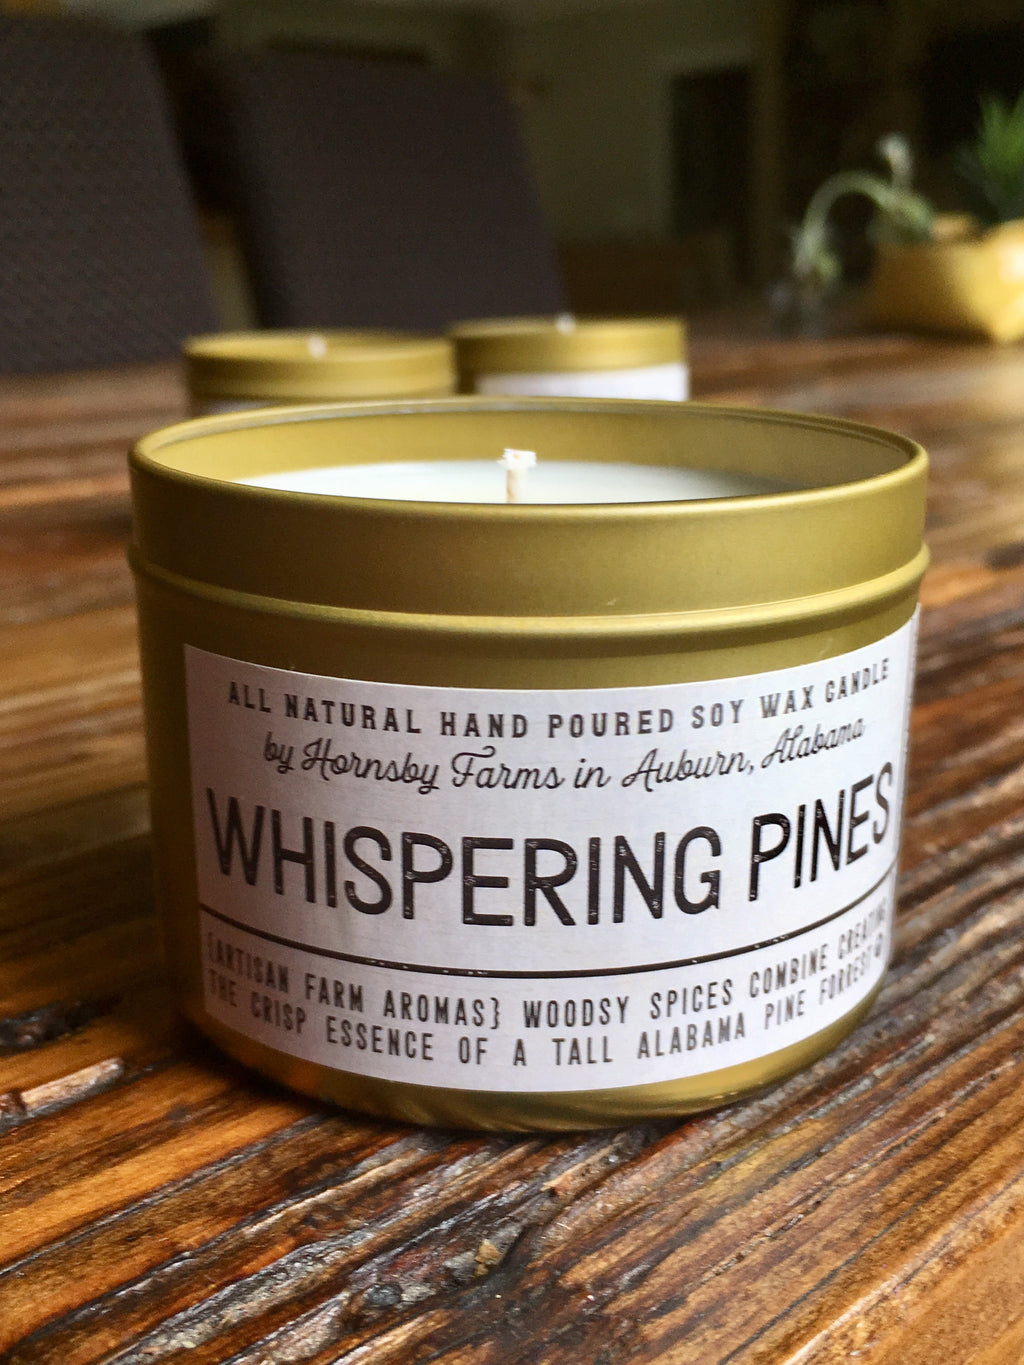 Whispering pines soy candle